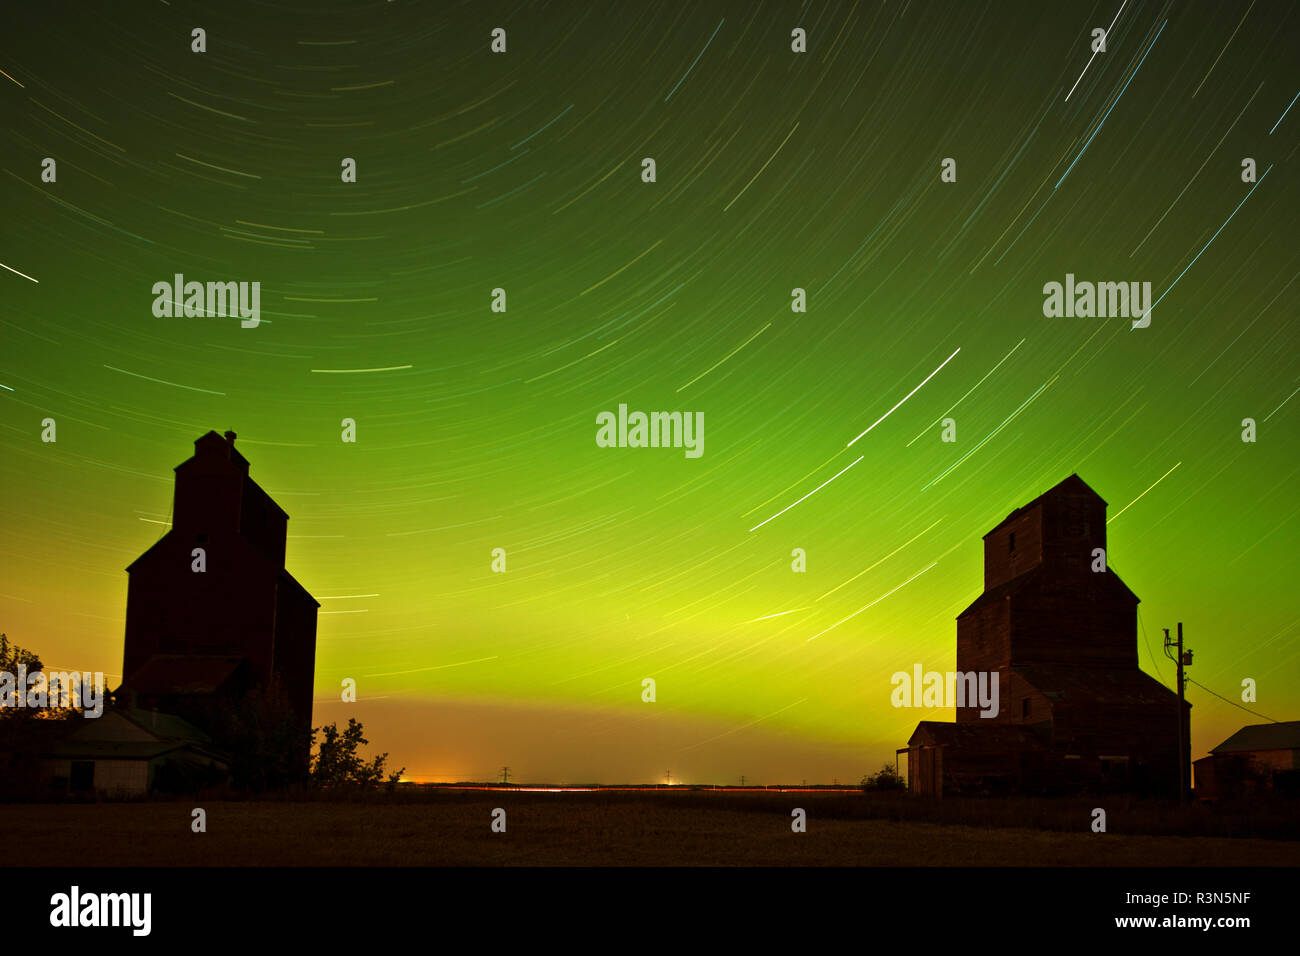 Canada, Saskatchewan, Lepine. Aurora borealis and star trails silhouette grain elevator. - Stock Image